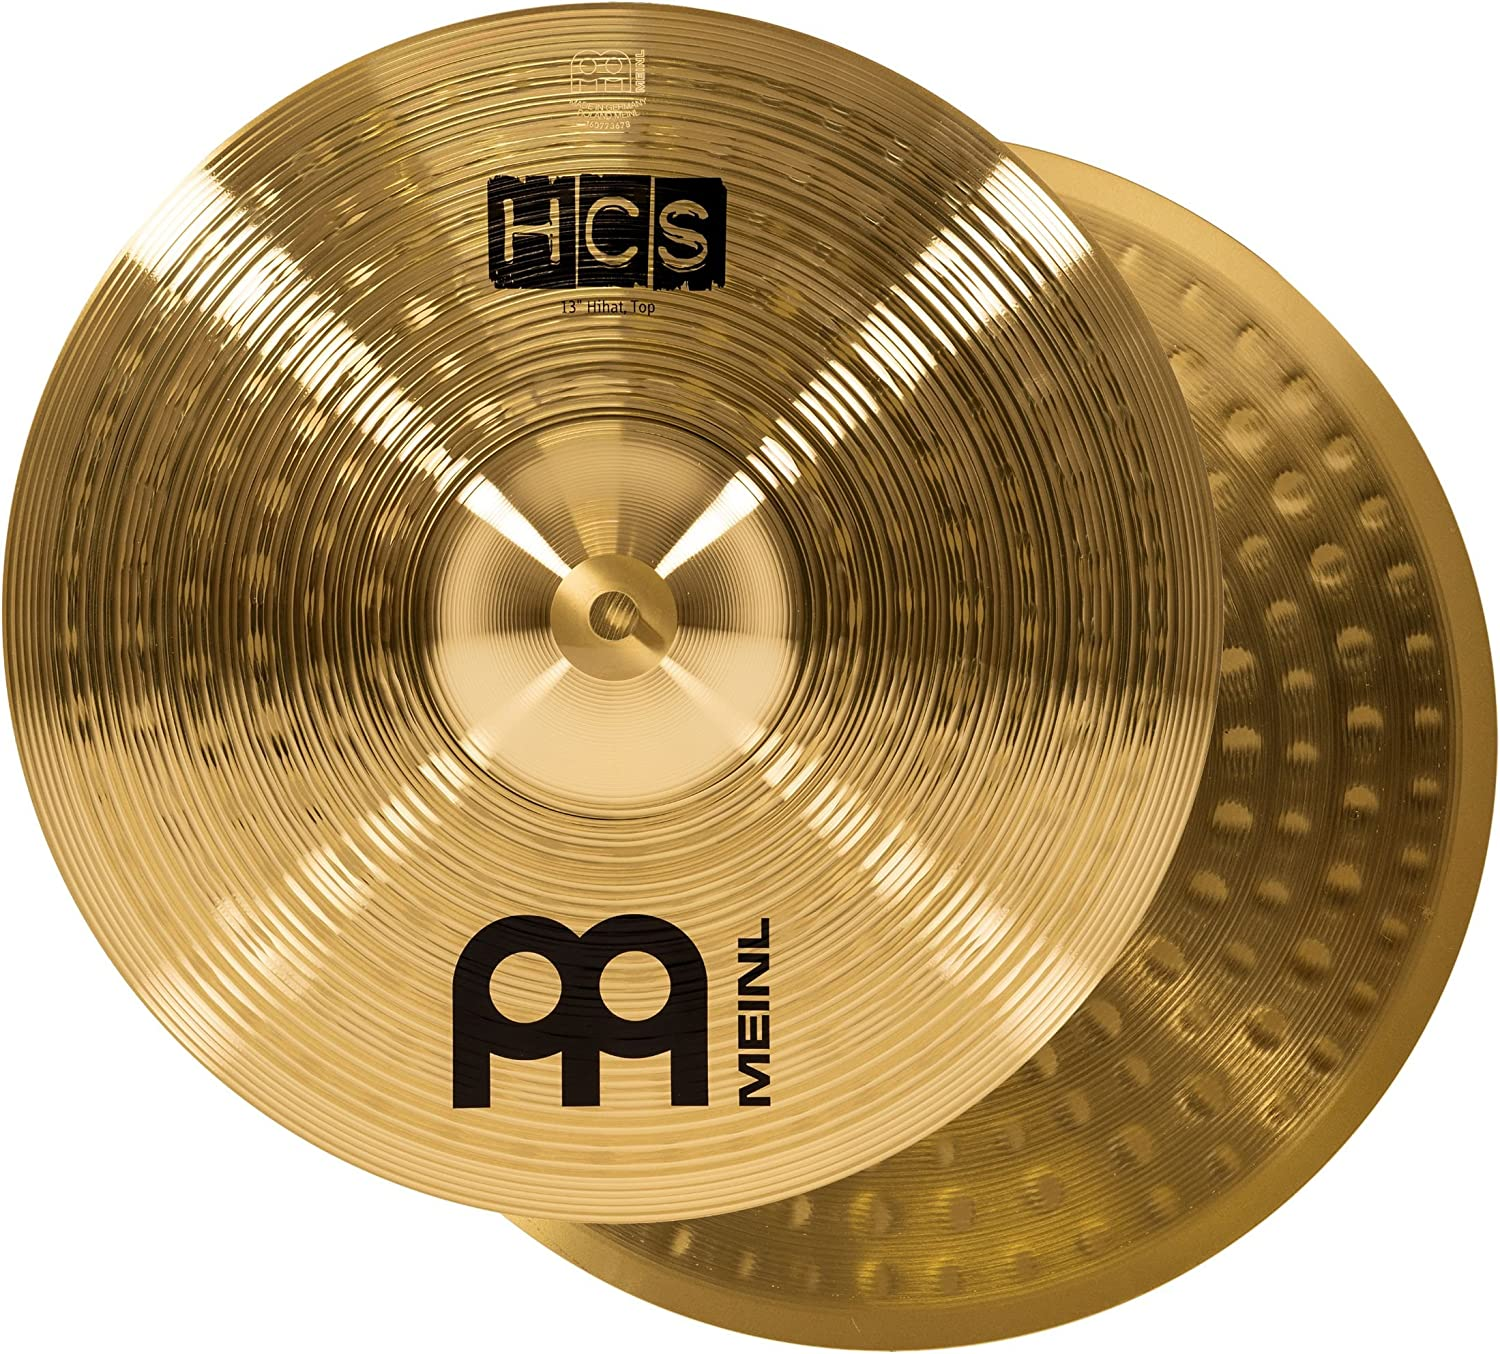 Meinl Cymbals Hihat (Hi Hat) Cymbal Pair – Hcs Traditional Finish Brass For Drum Set